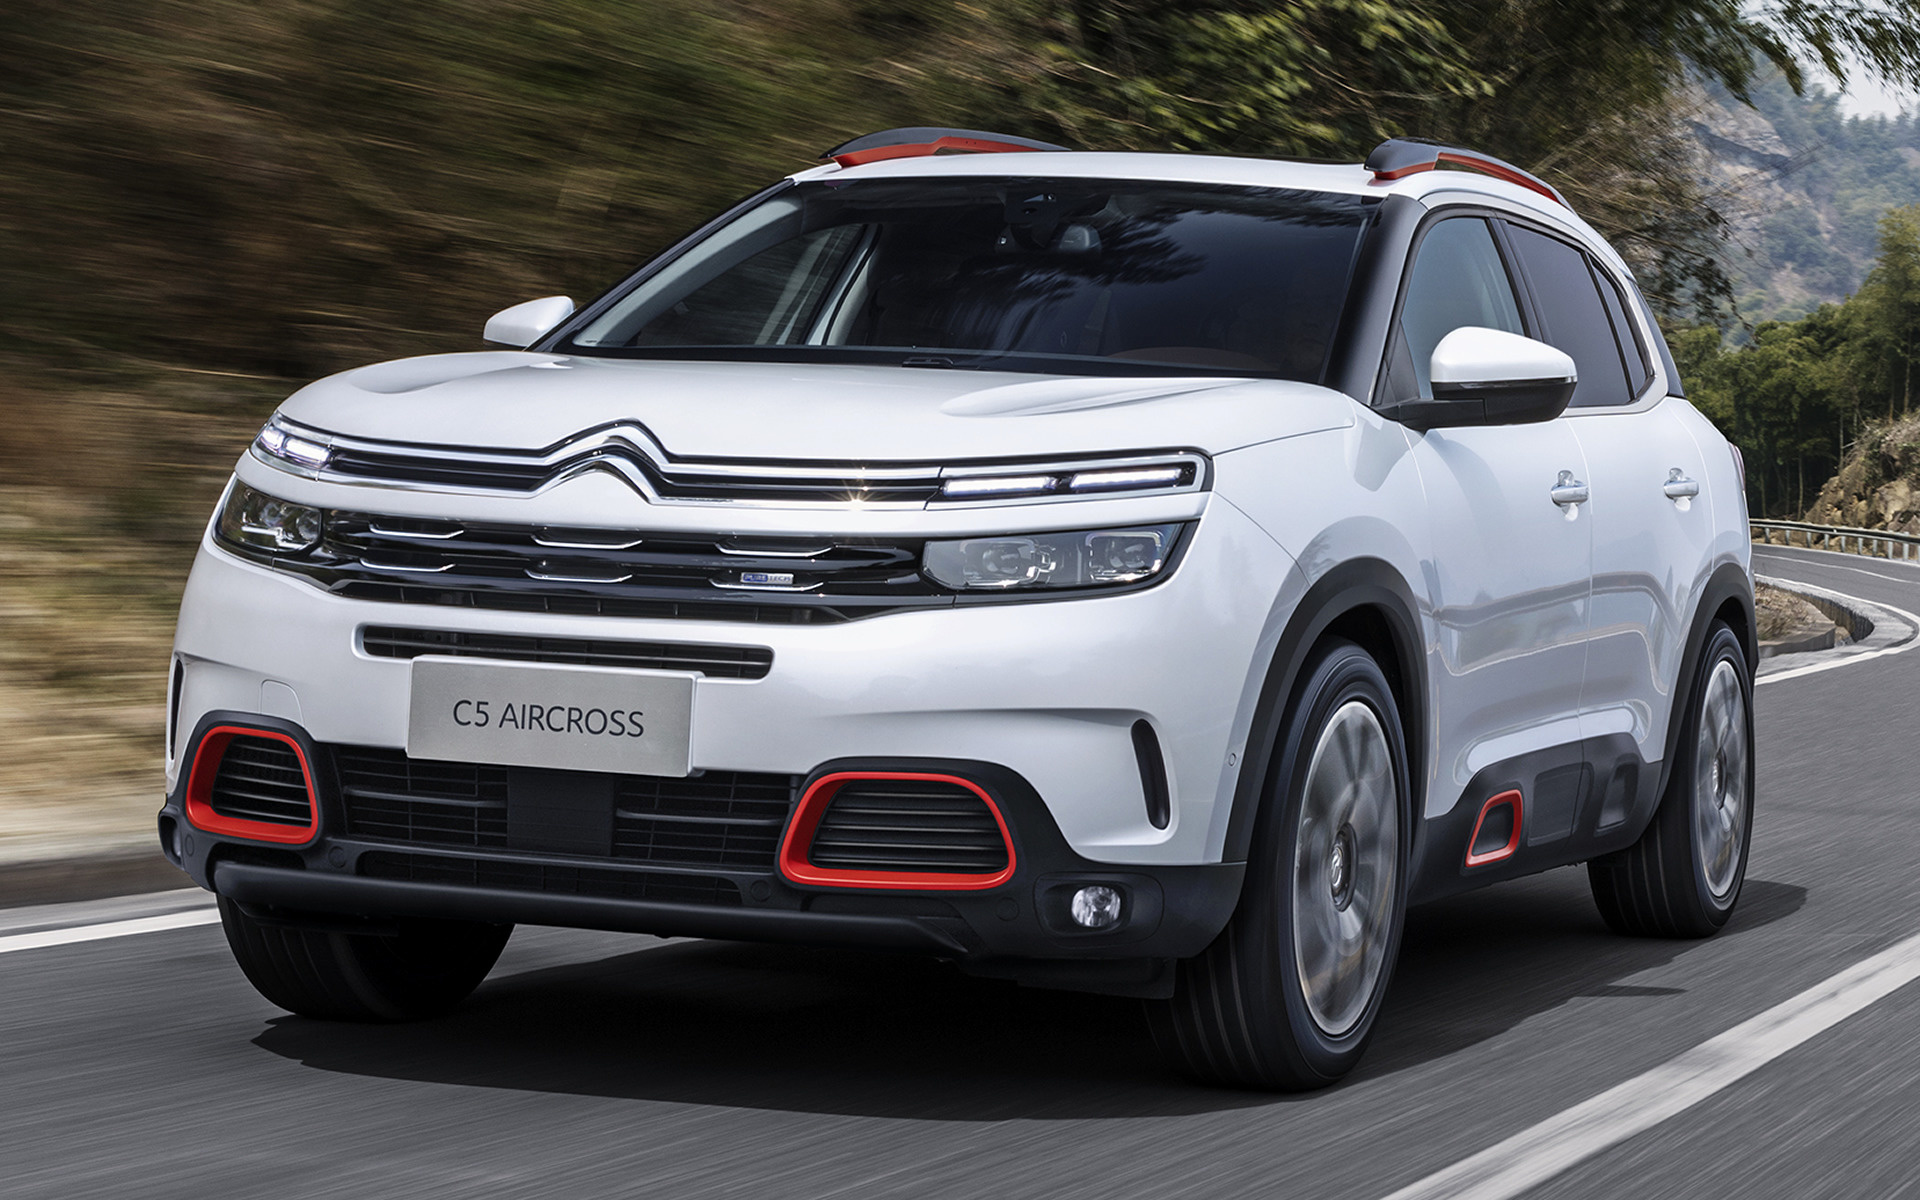 citroen c5 aircross 2017 wallpapers and hd images car pixel. Black Bedroom Furniture Sets. Home Design Ideas